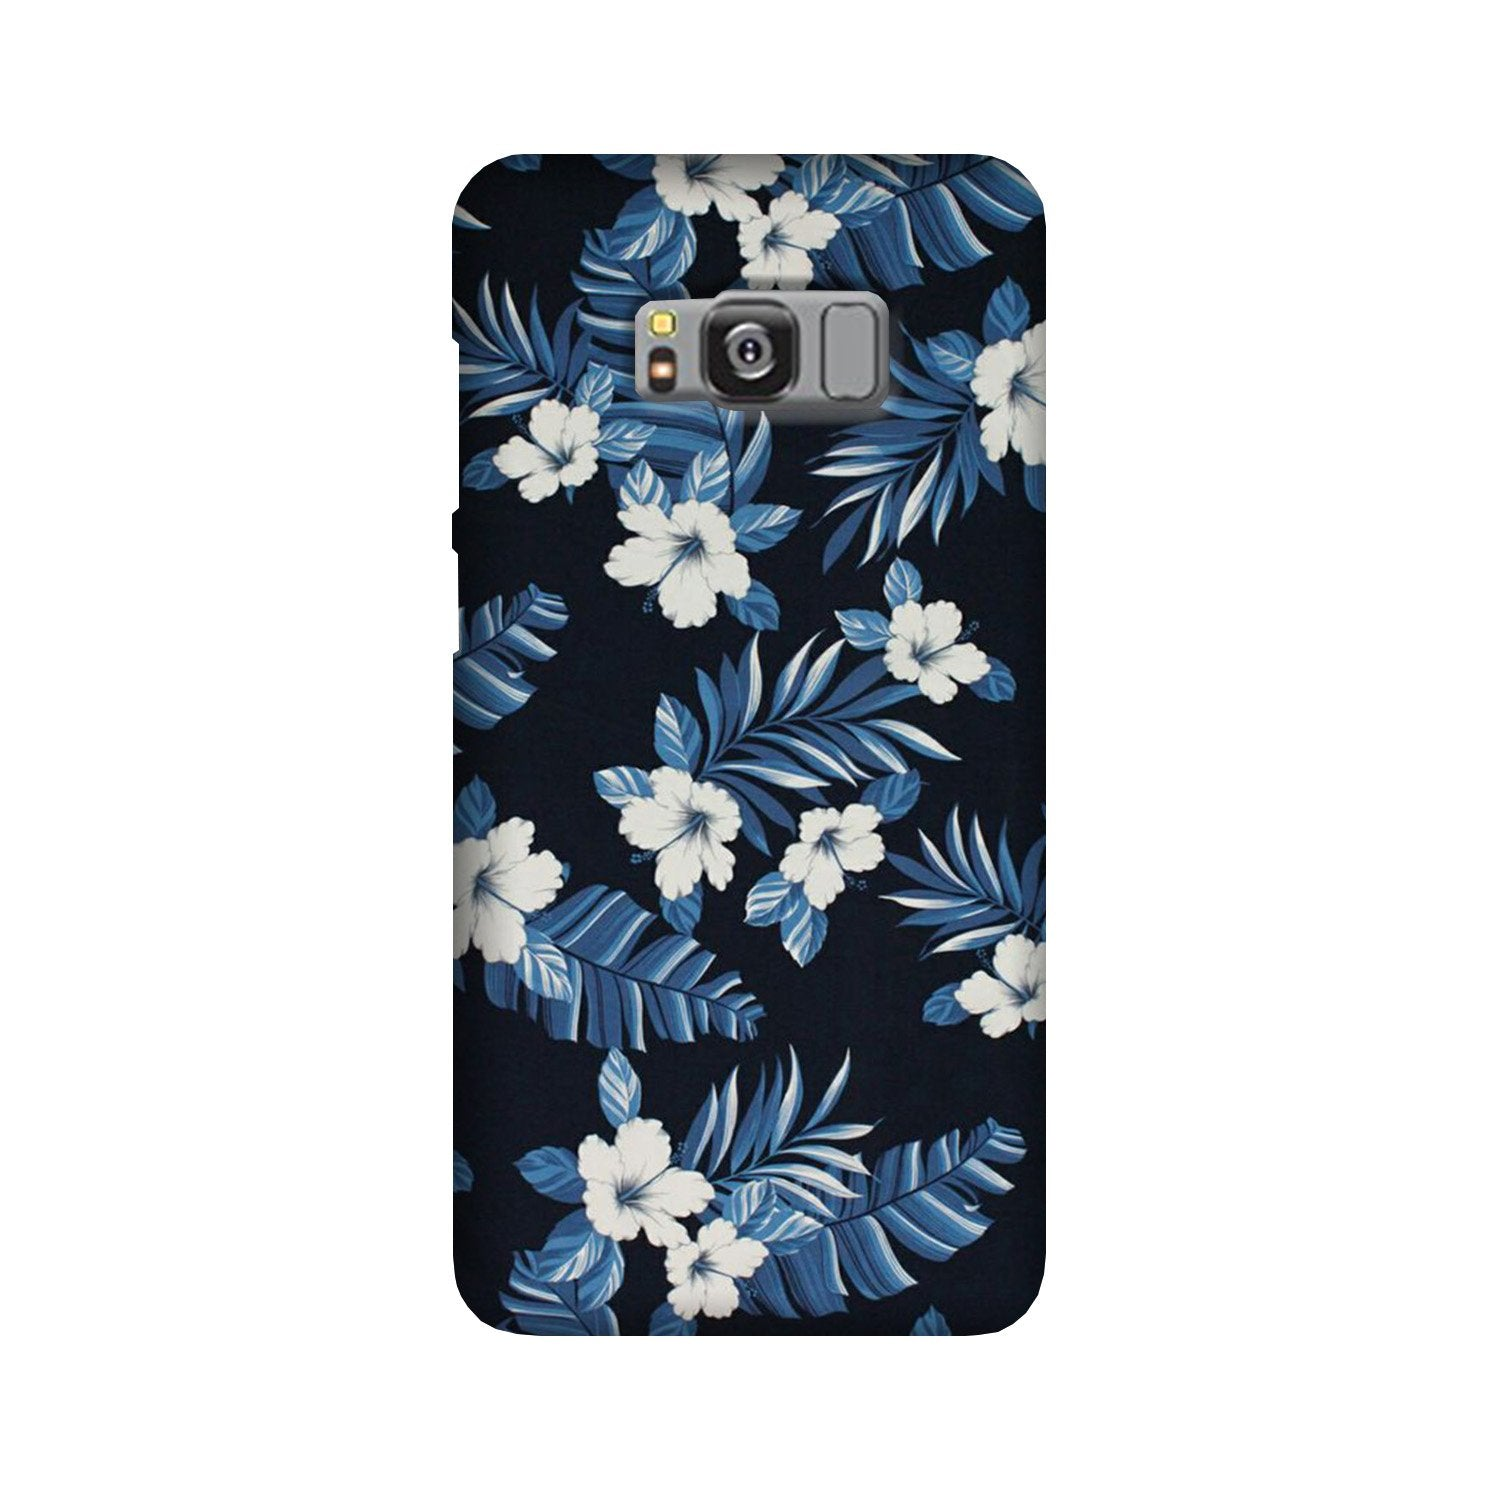 White flowers Blue Background2 Case for Galaxy S8